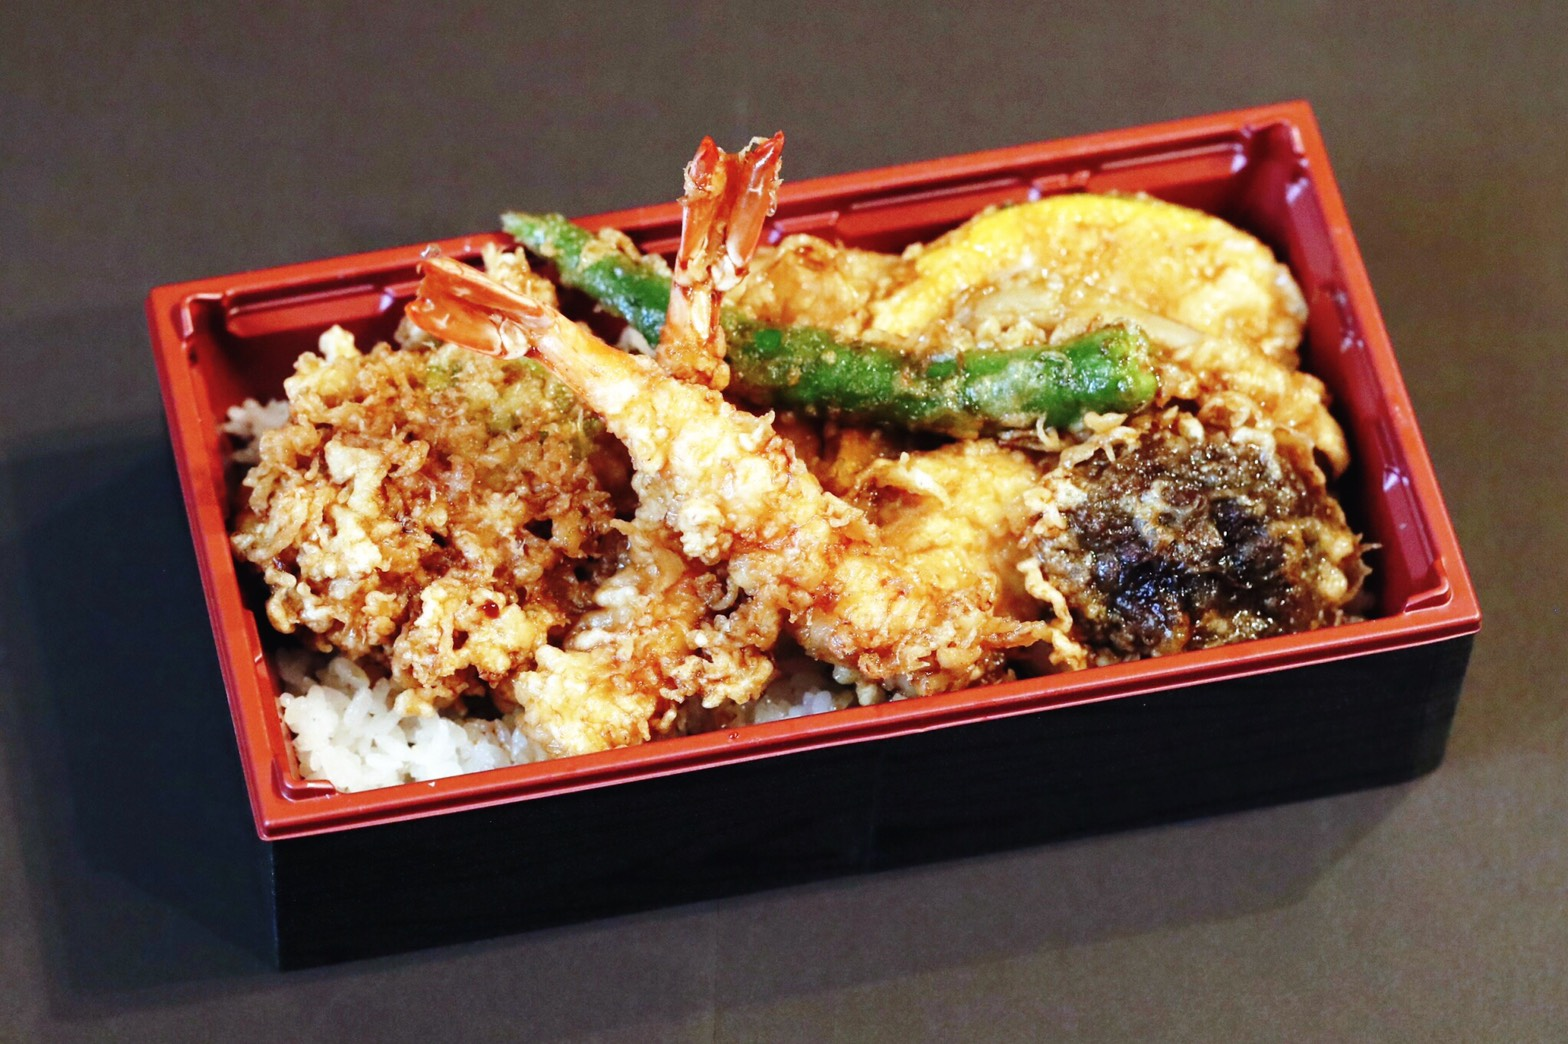 tempura miyashiro nakameguro michelin starred restaurant lunch set